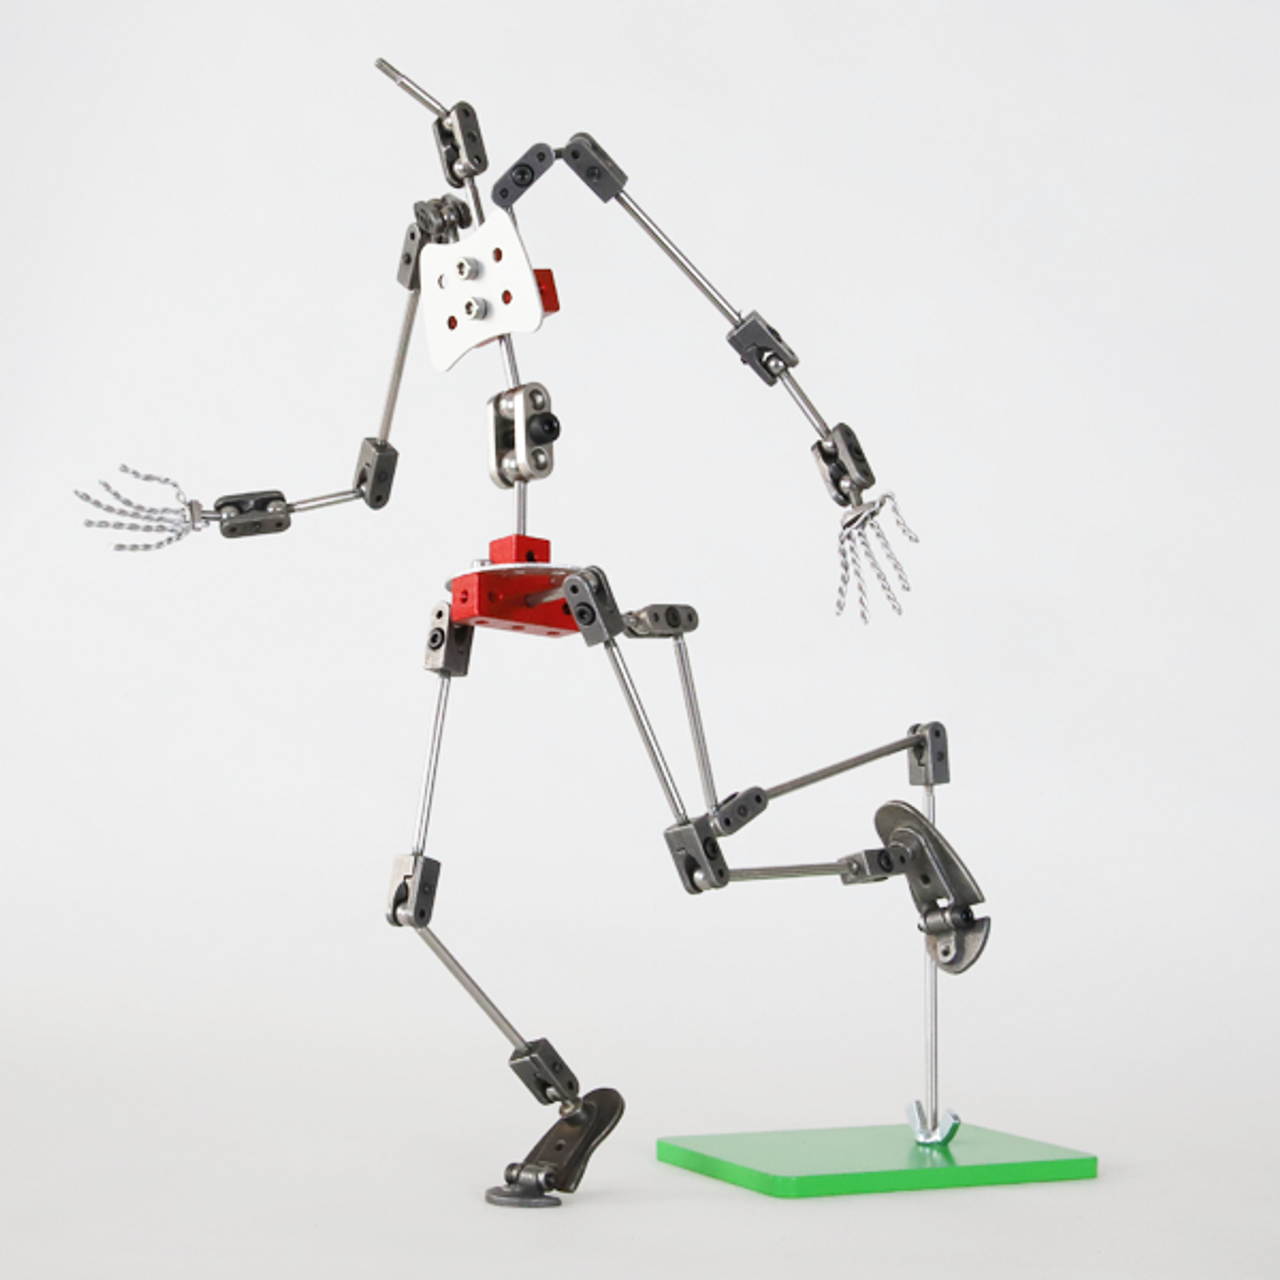 Humanoid armature shown with Aardman Armatures Rig Kit (not included).